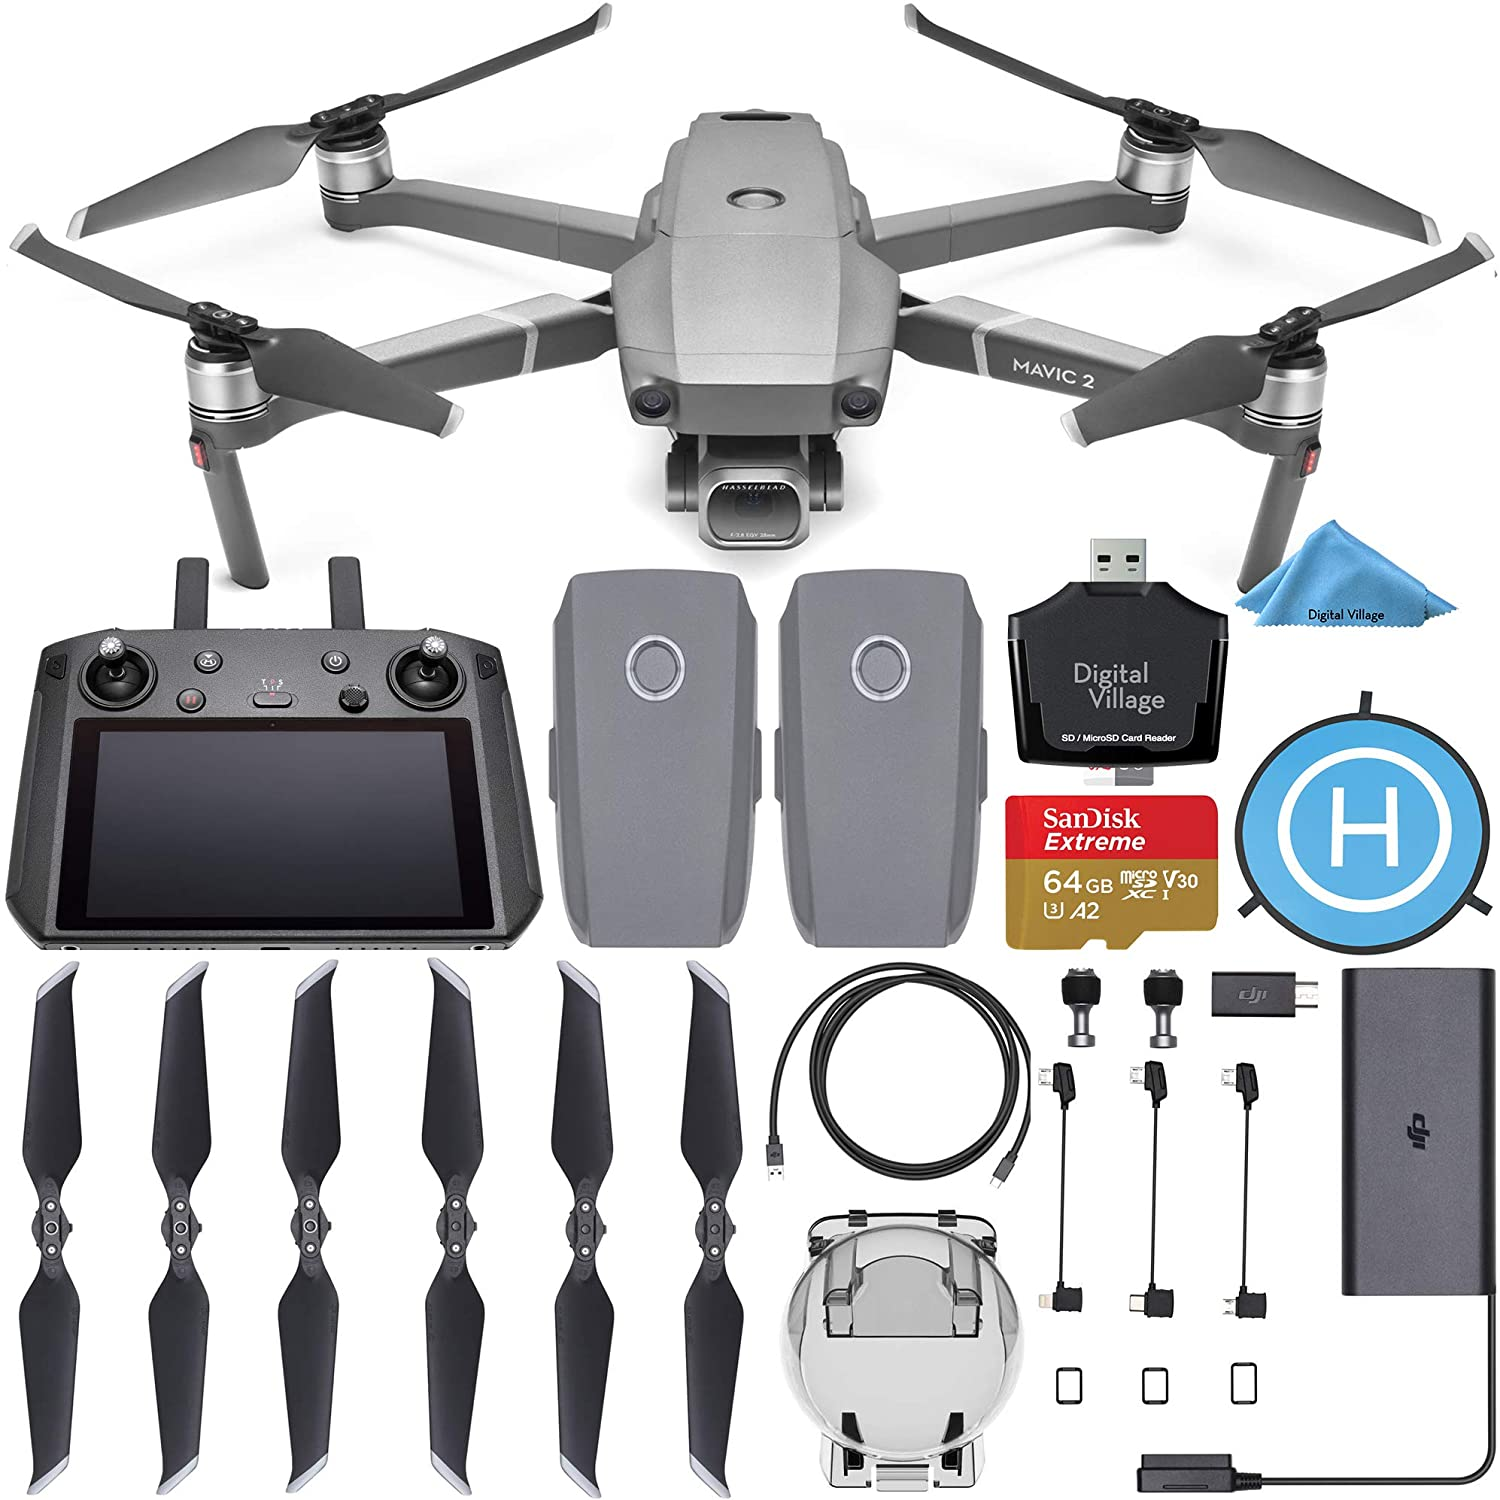 DJI Mavic 2 Pro Drone Quadcopter with Smart Controller with 2 Batteries + SanDisk Extreme 64GB + Landing Pad + Card Reader and 1-Year Warranty